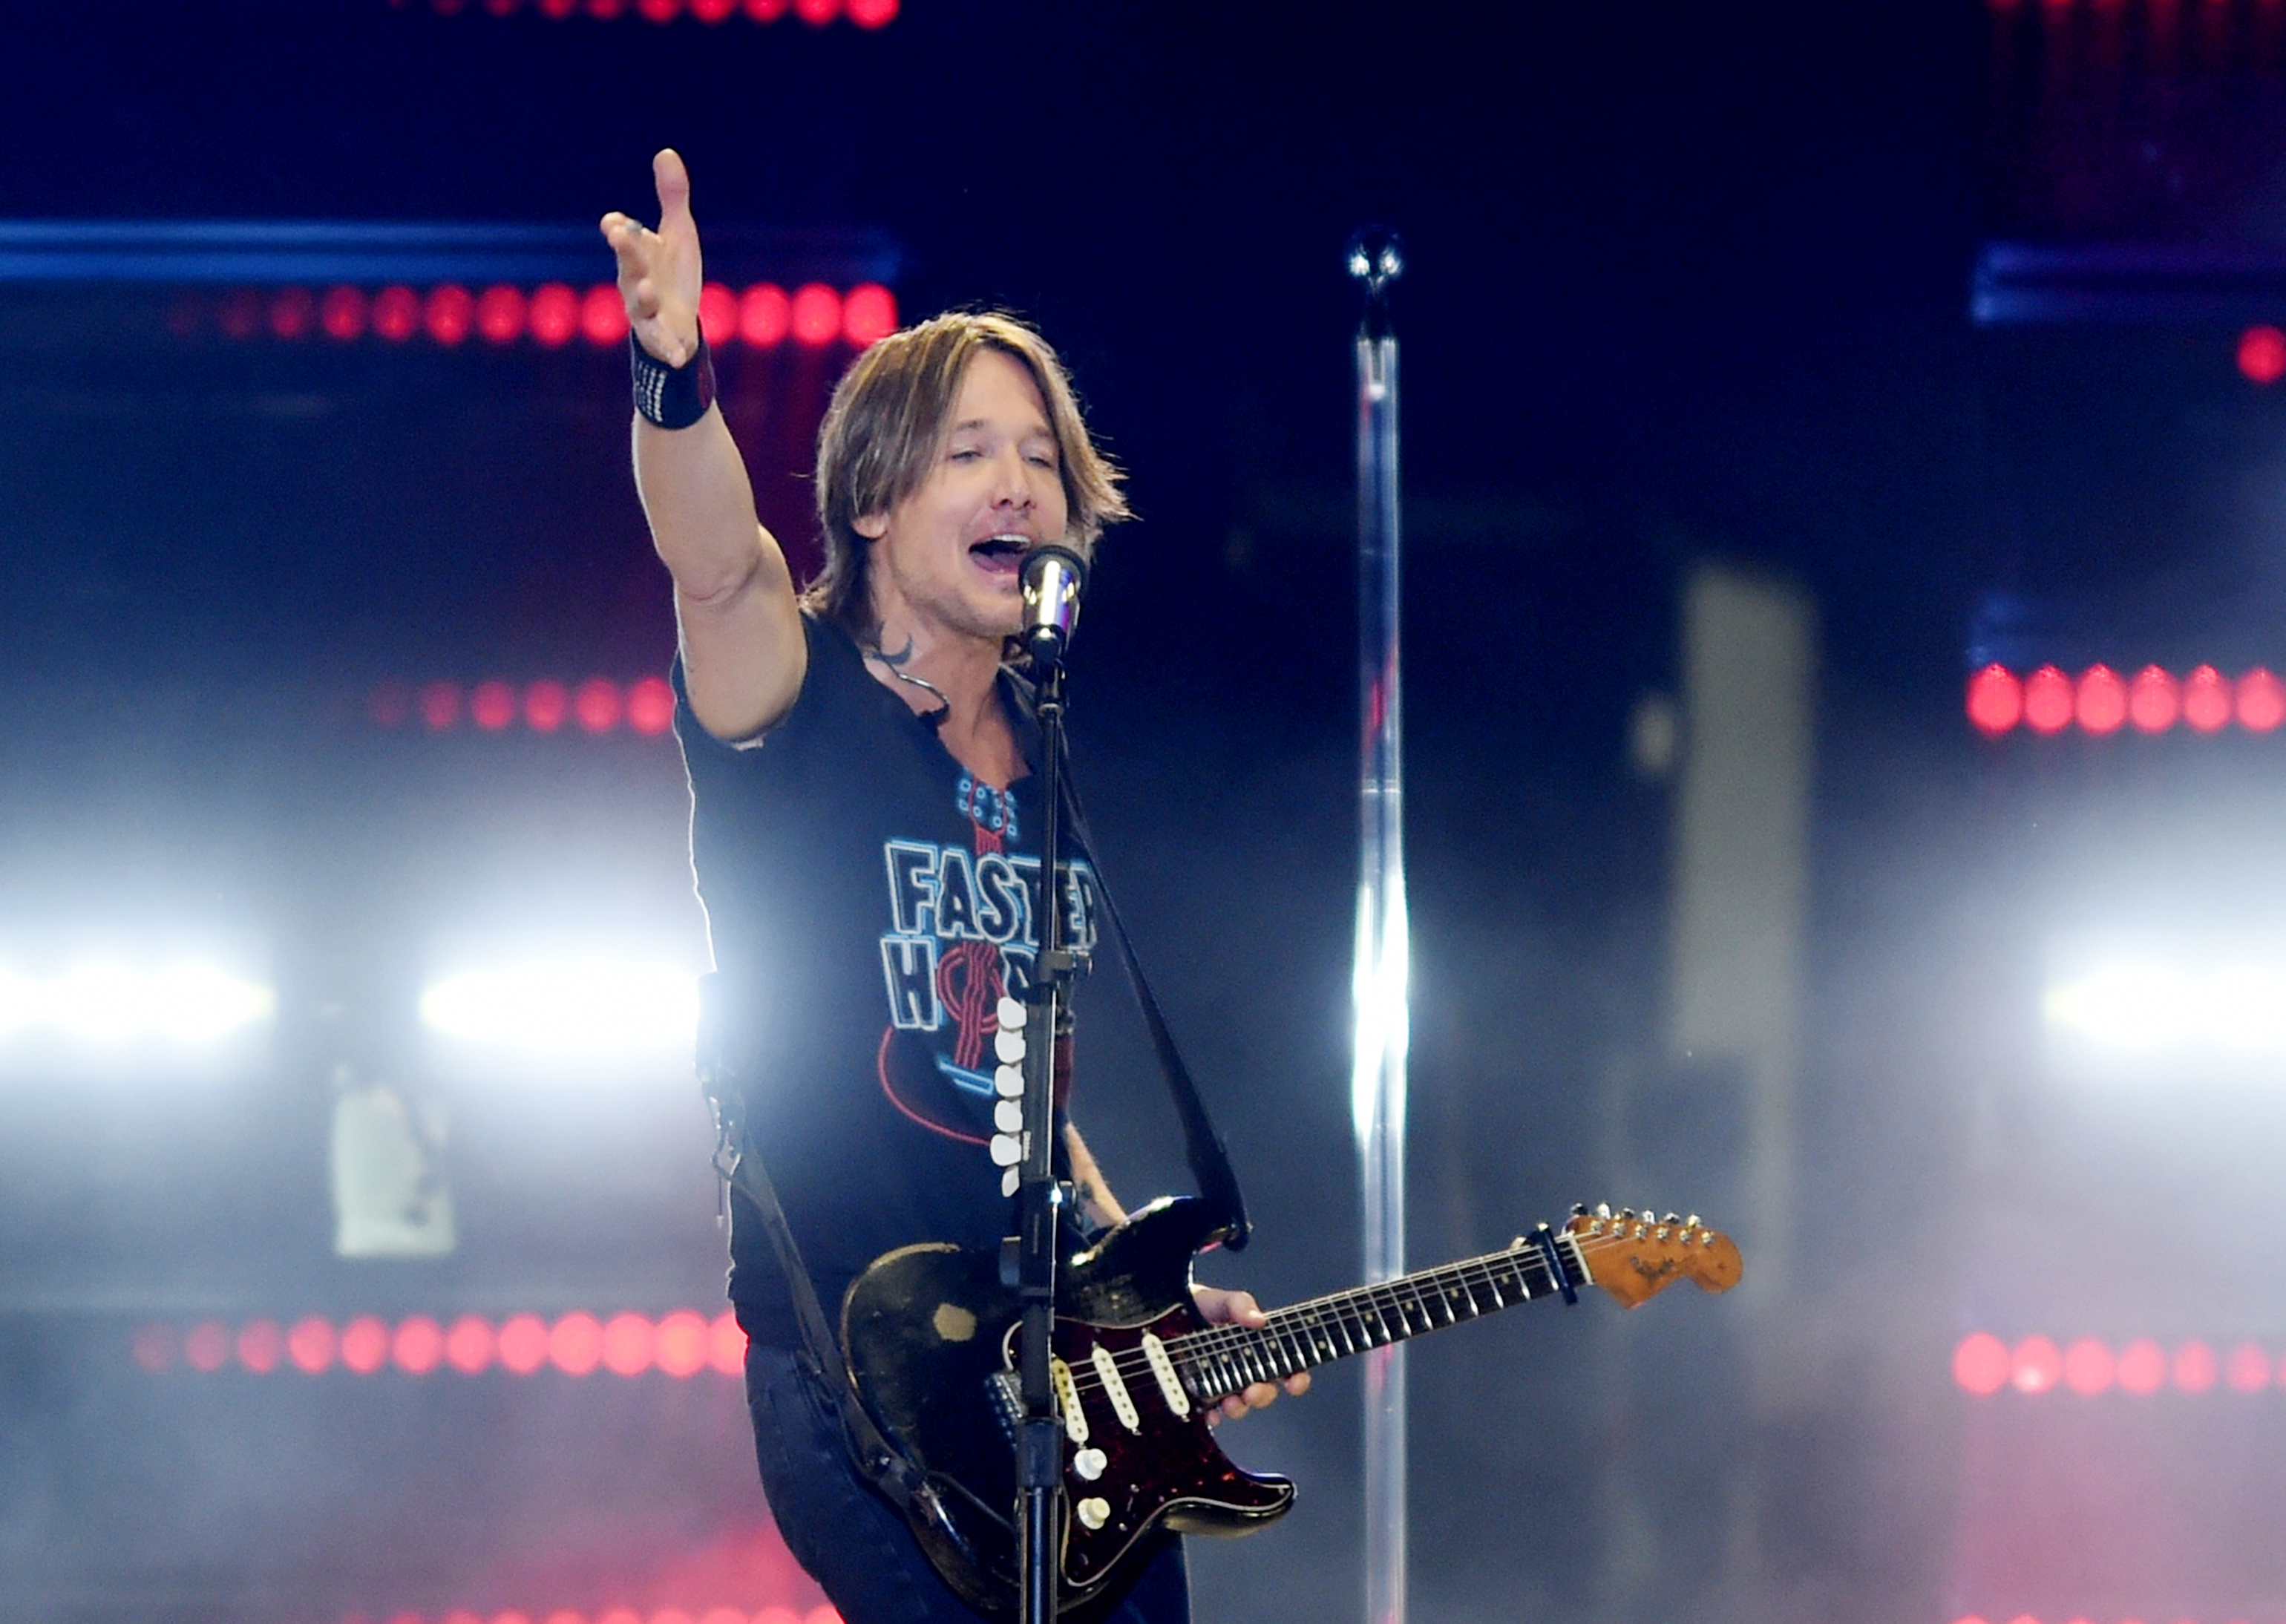 Keith Urban closes out sweat-soaked first day of 2019 Faster Horses Festival